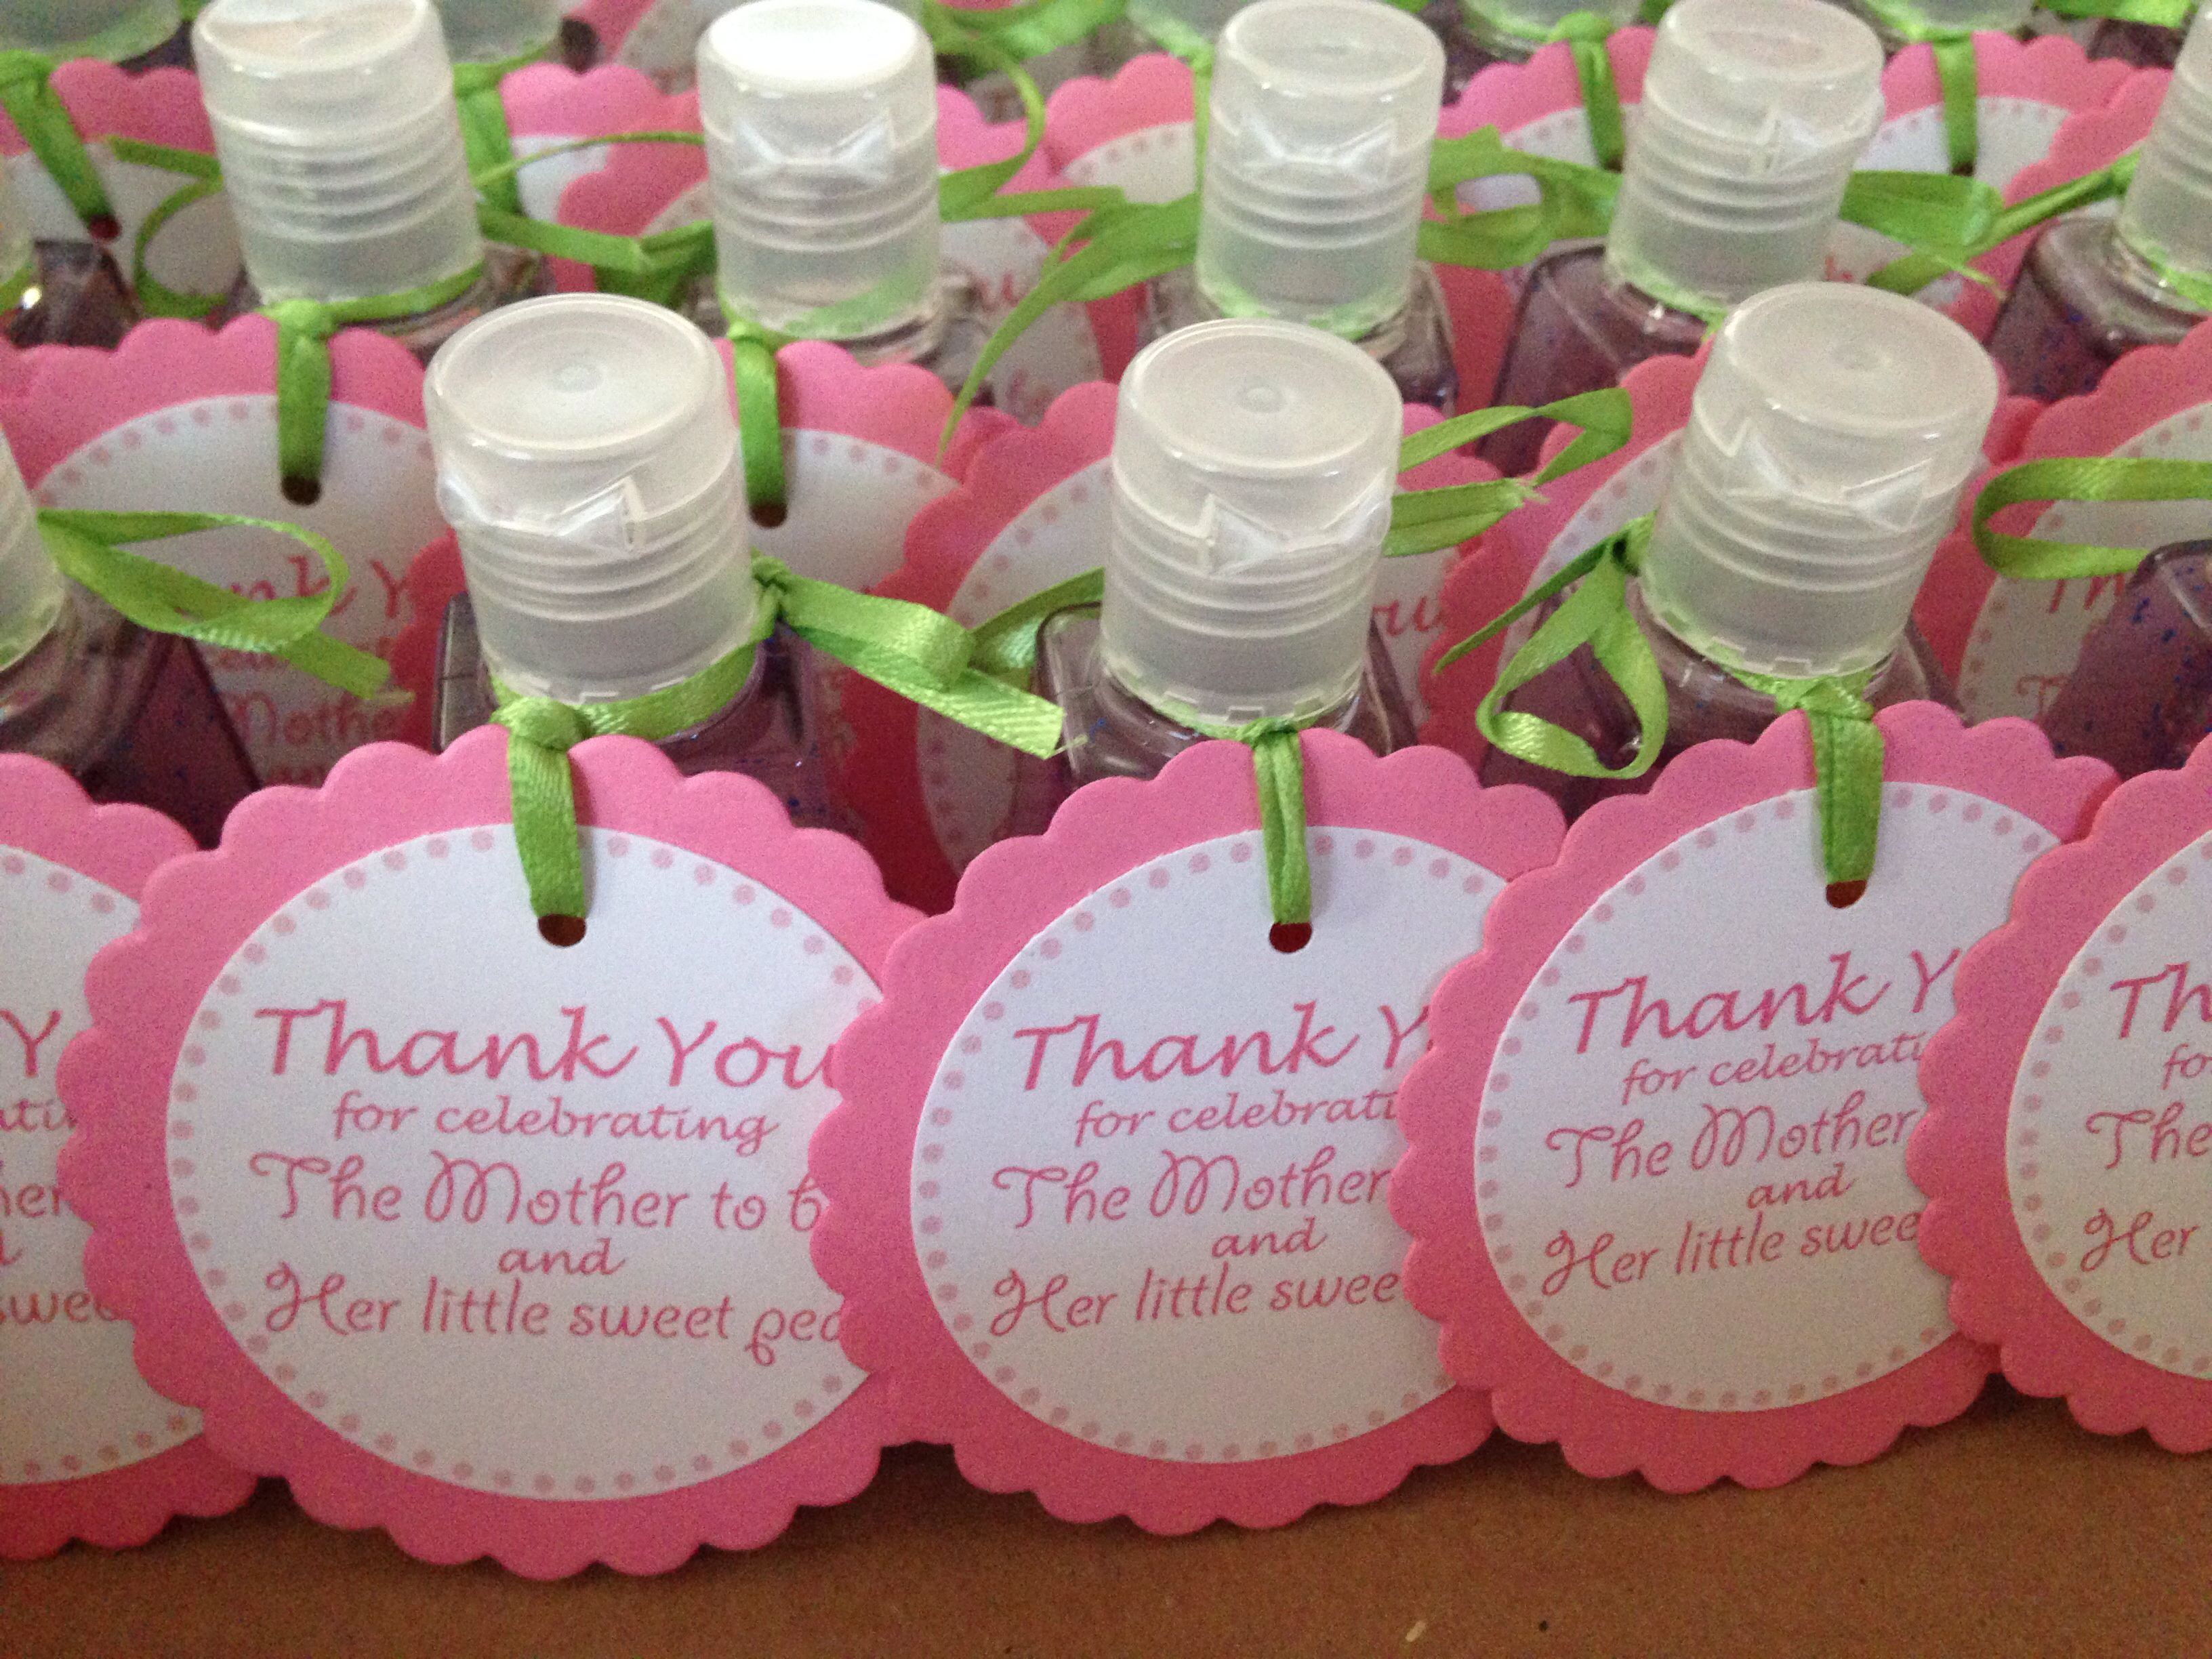 Baby Girl Shower Favors Sweet Pea Sanitizers From Bath Body Works